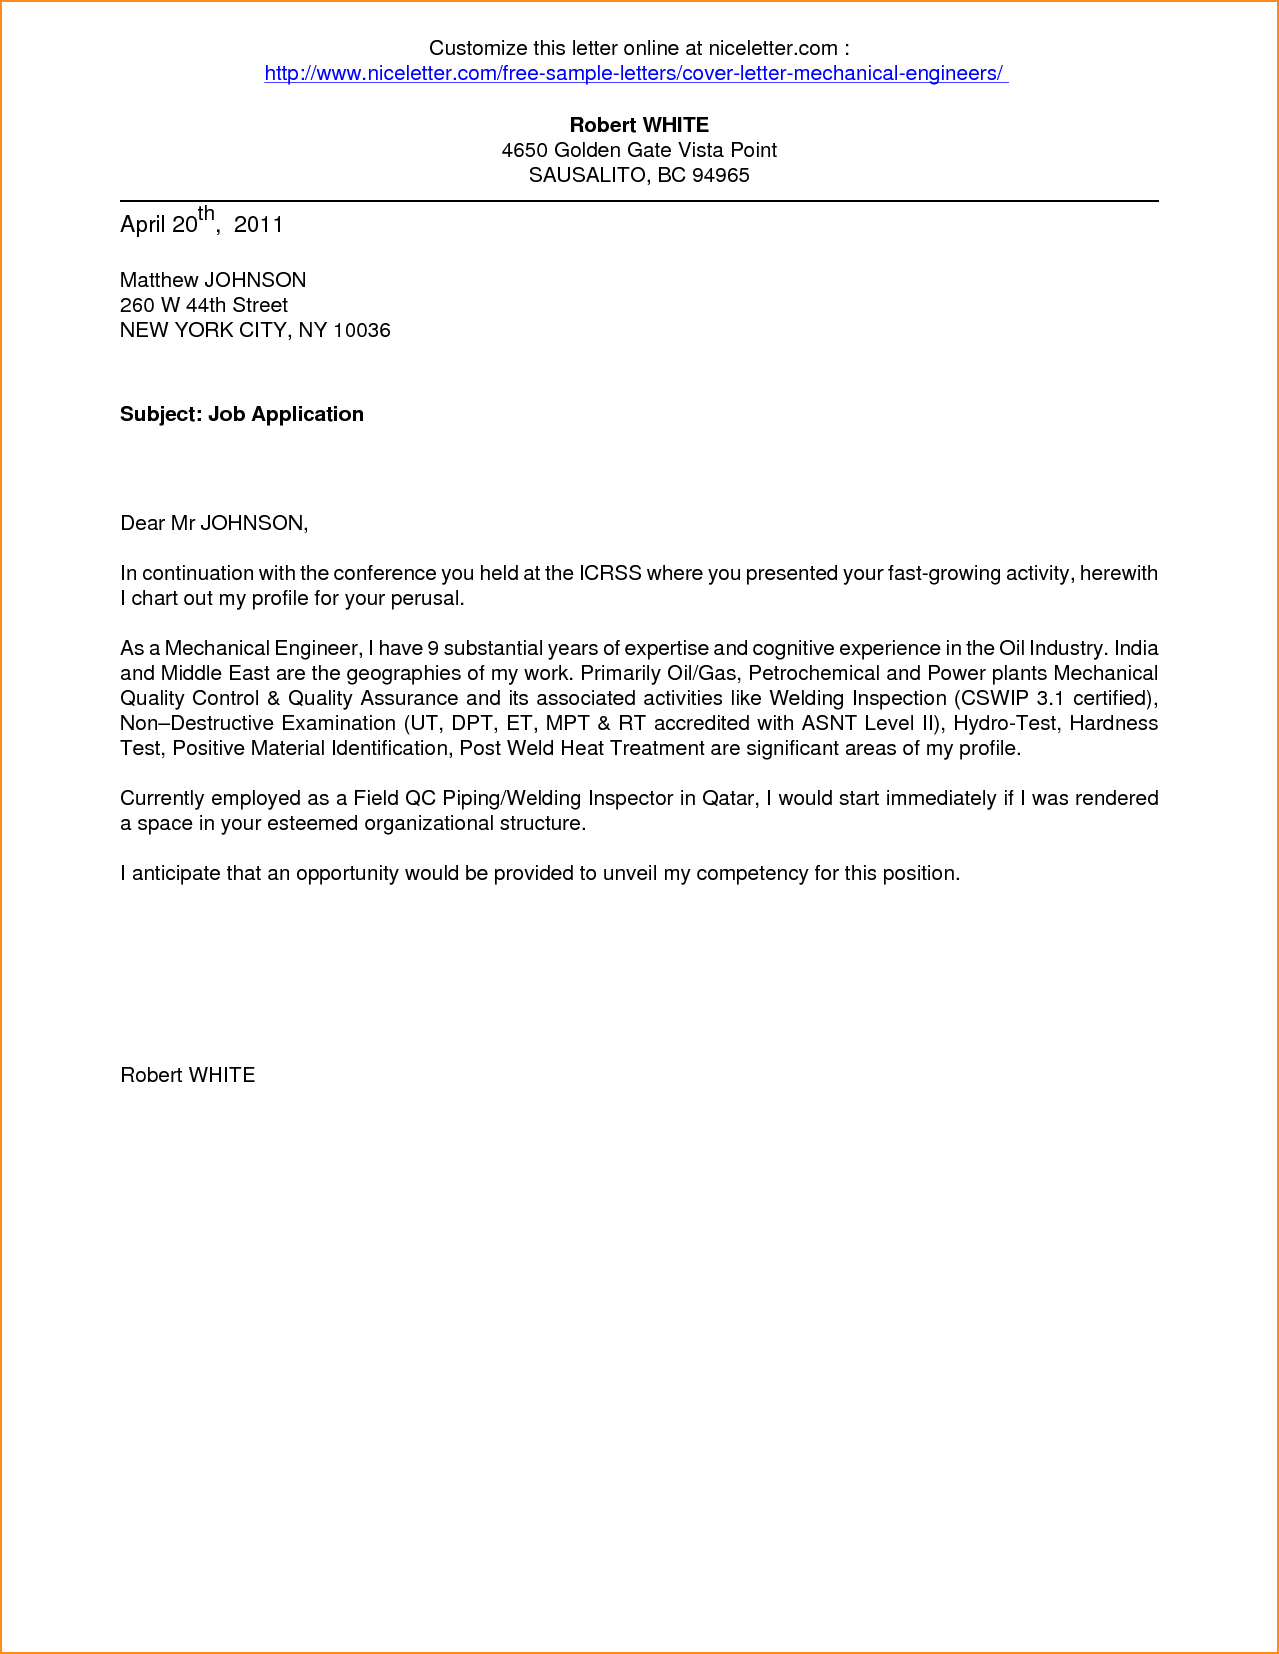 cover letter format for job application application for employment cover letter application 21103